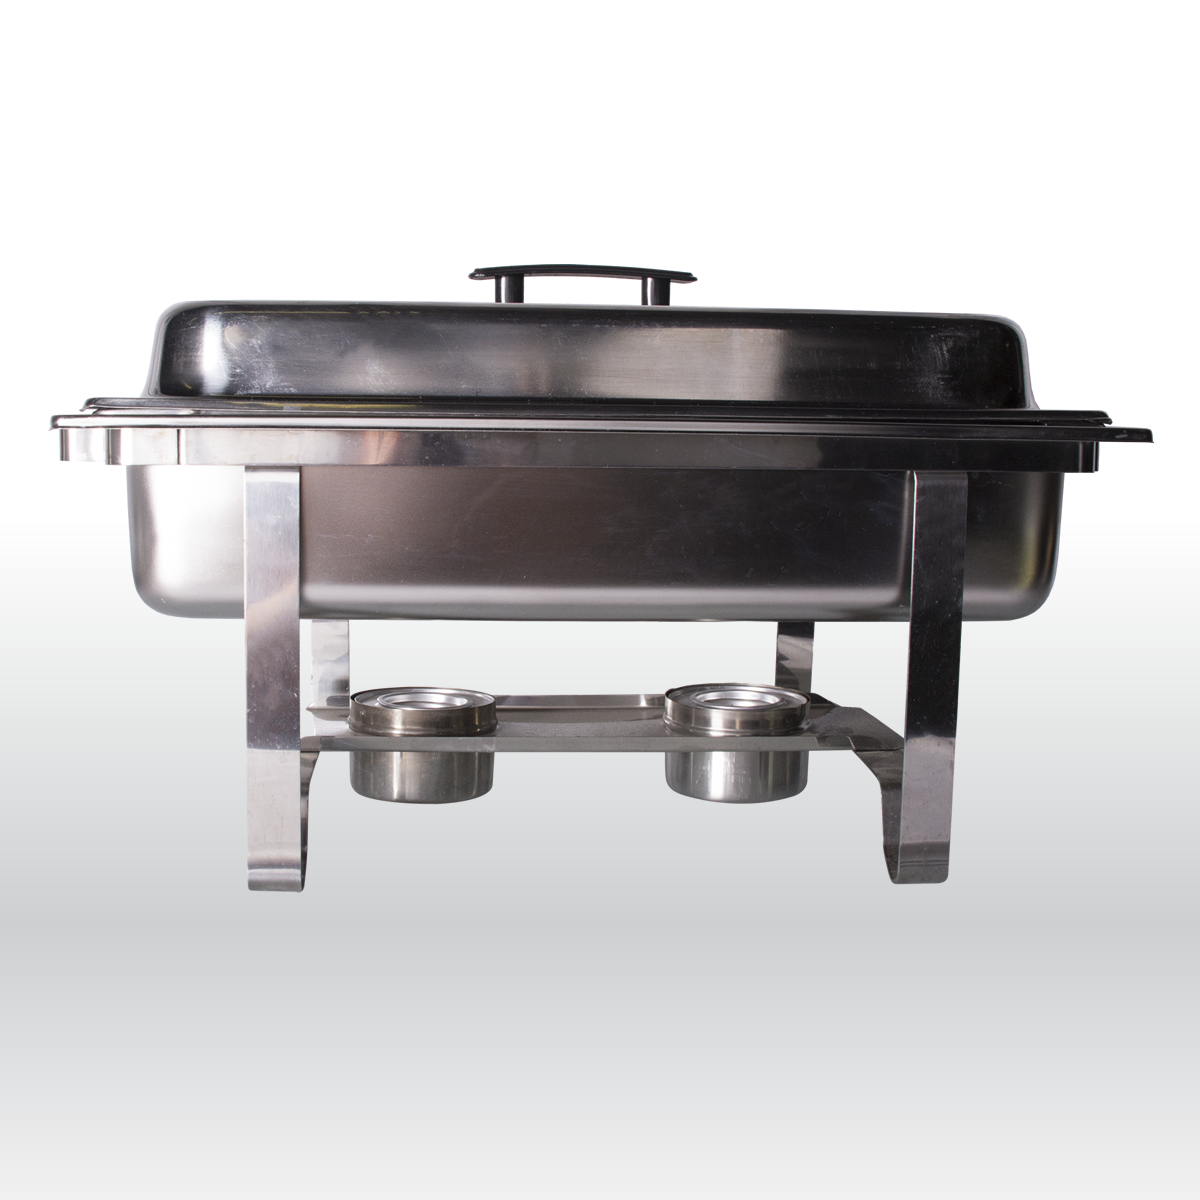 Chafing Dish Stainless Steel The Party Centre